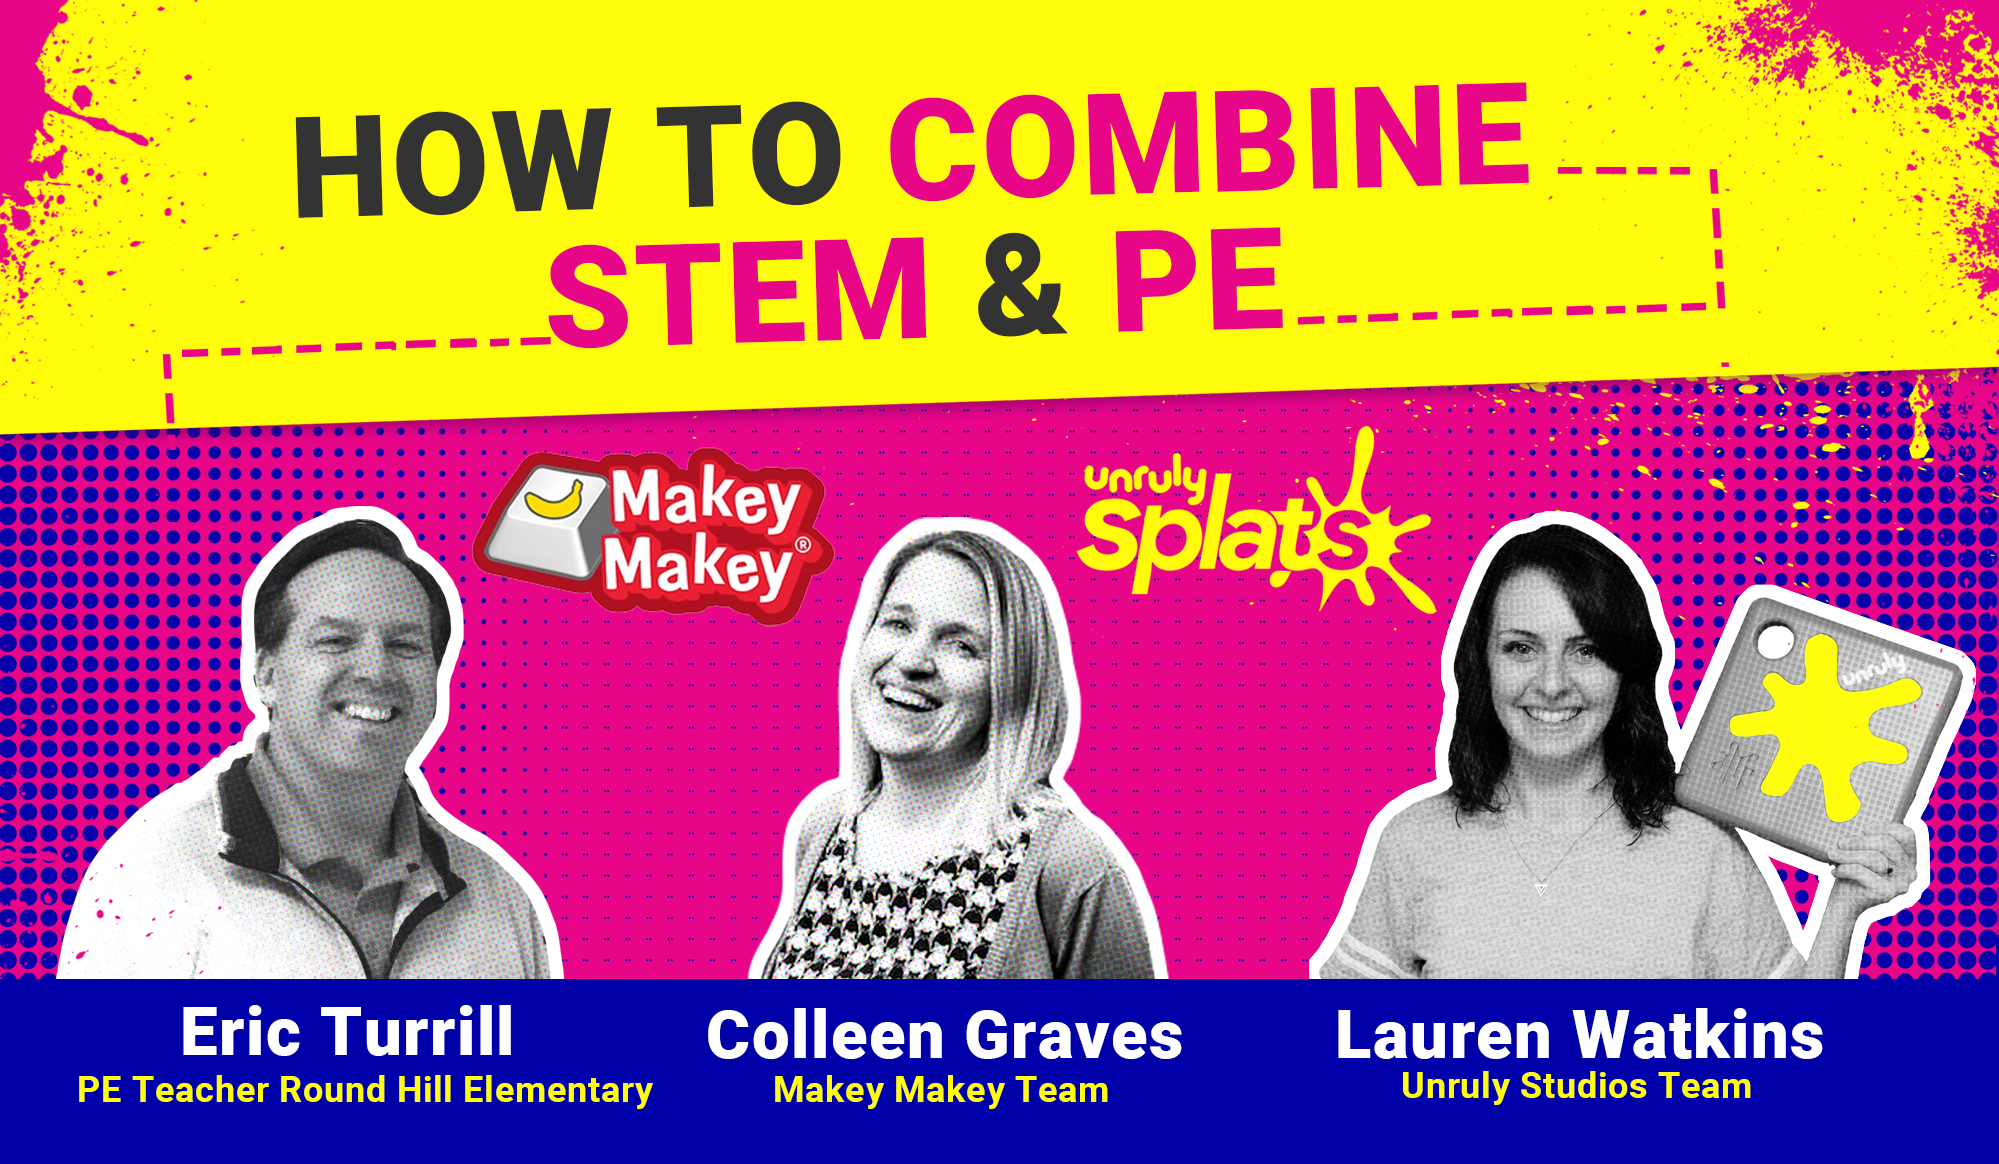 How to Combine STEM & PE Webinar